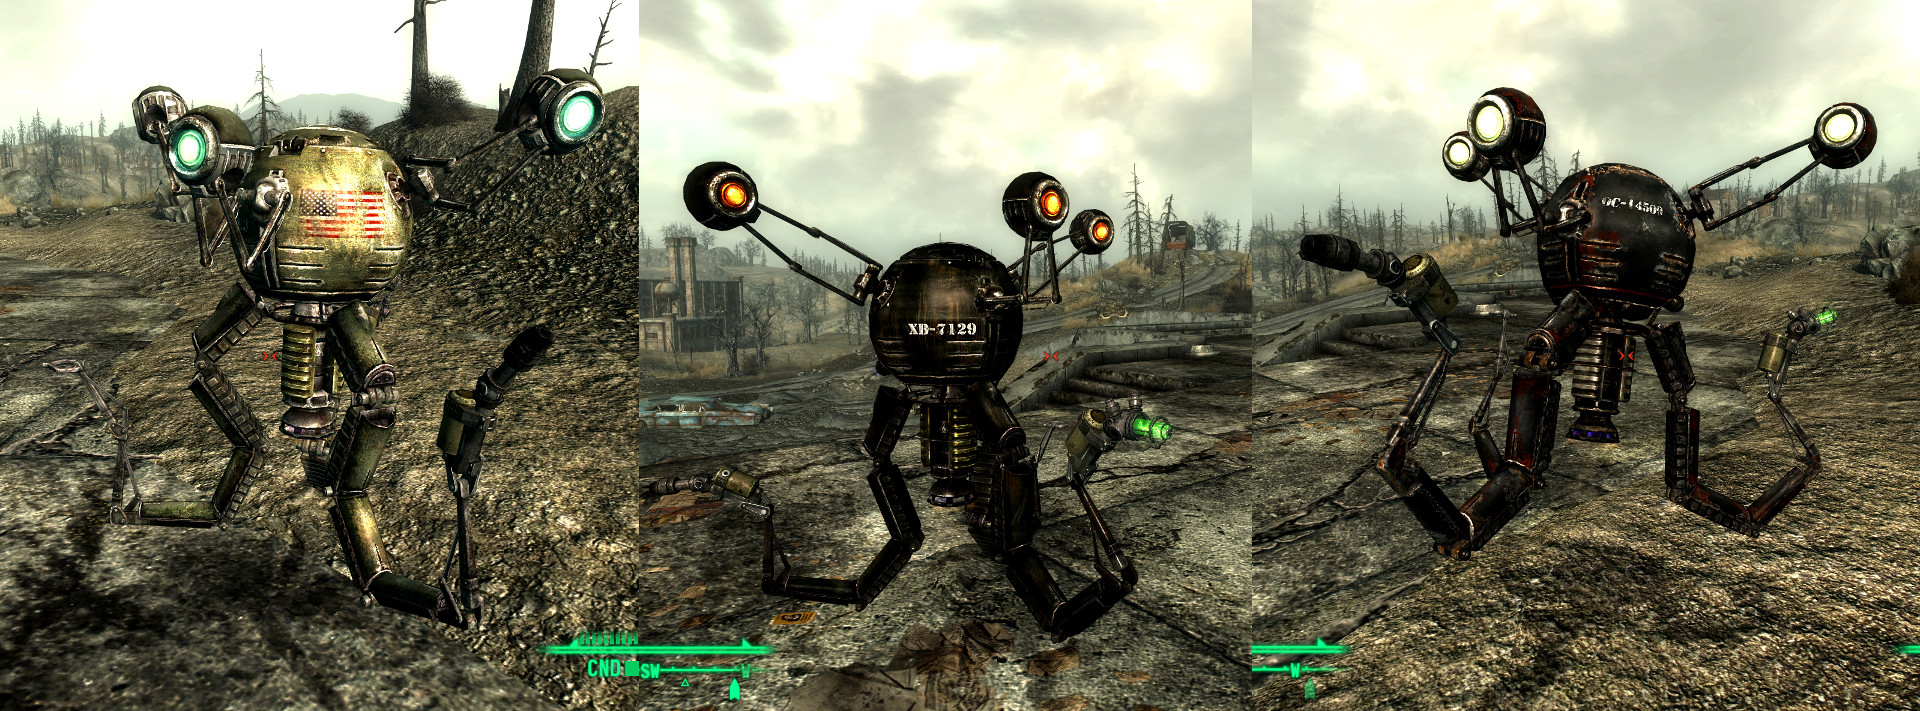 Marts Mutant Mod - RC 62 at Fallout3 Nexus - mods and community